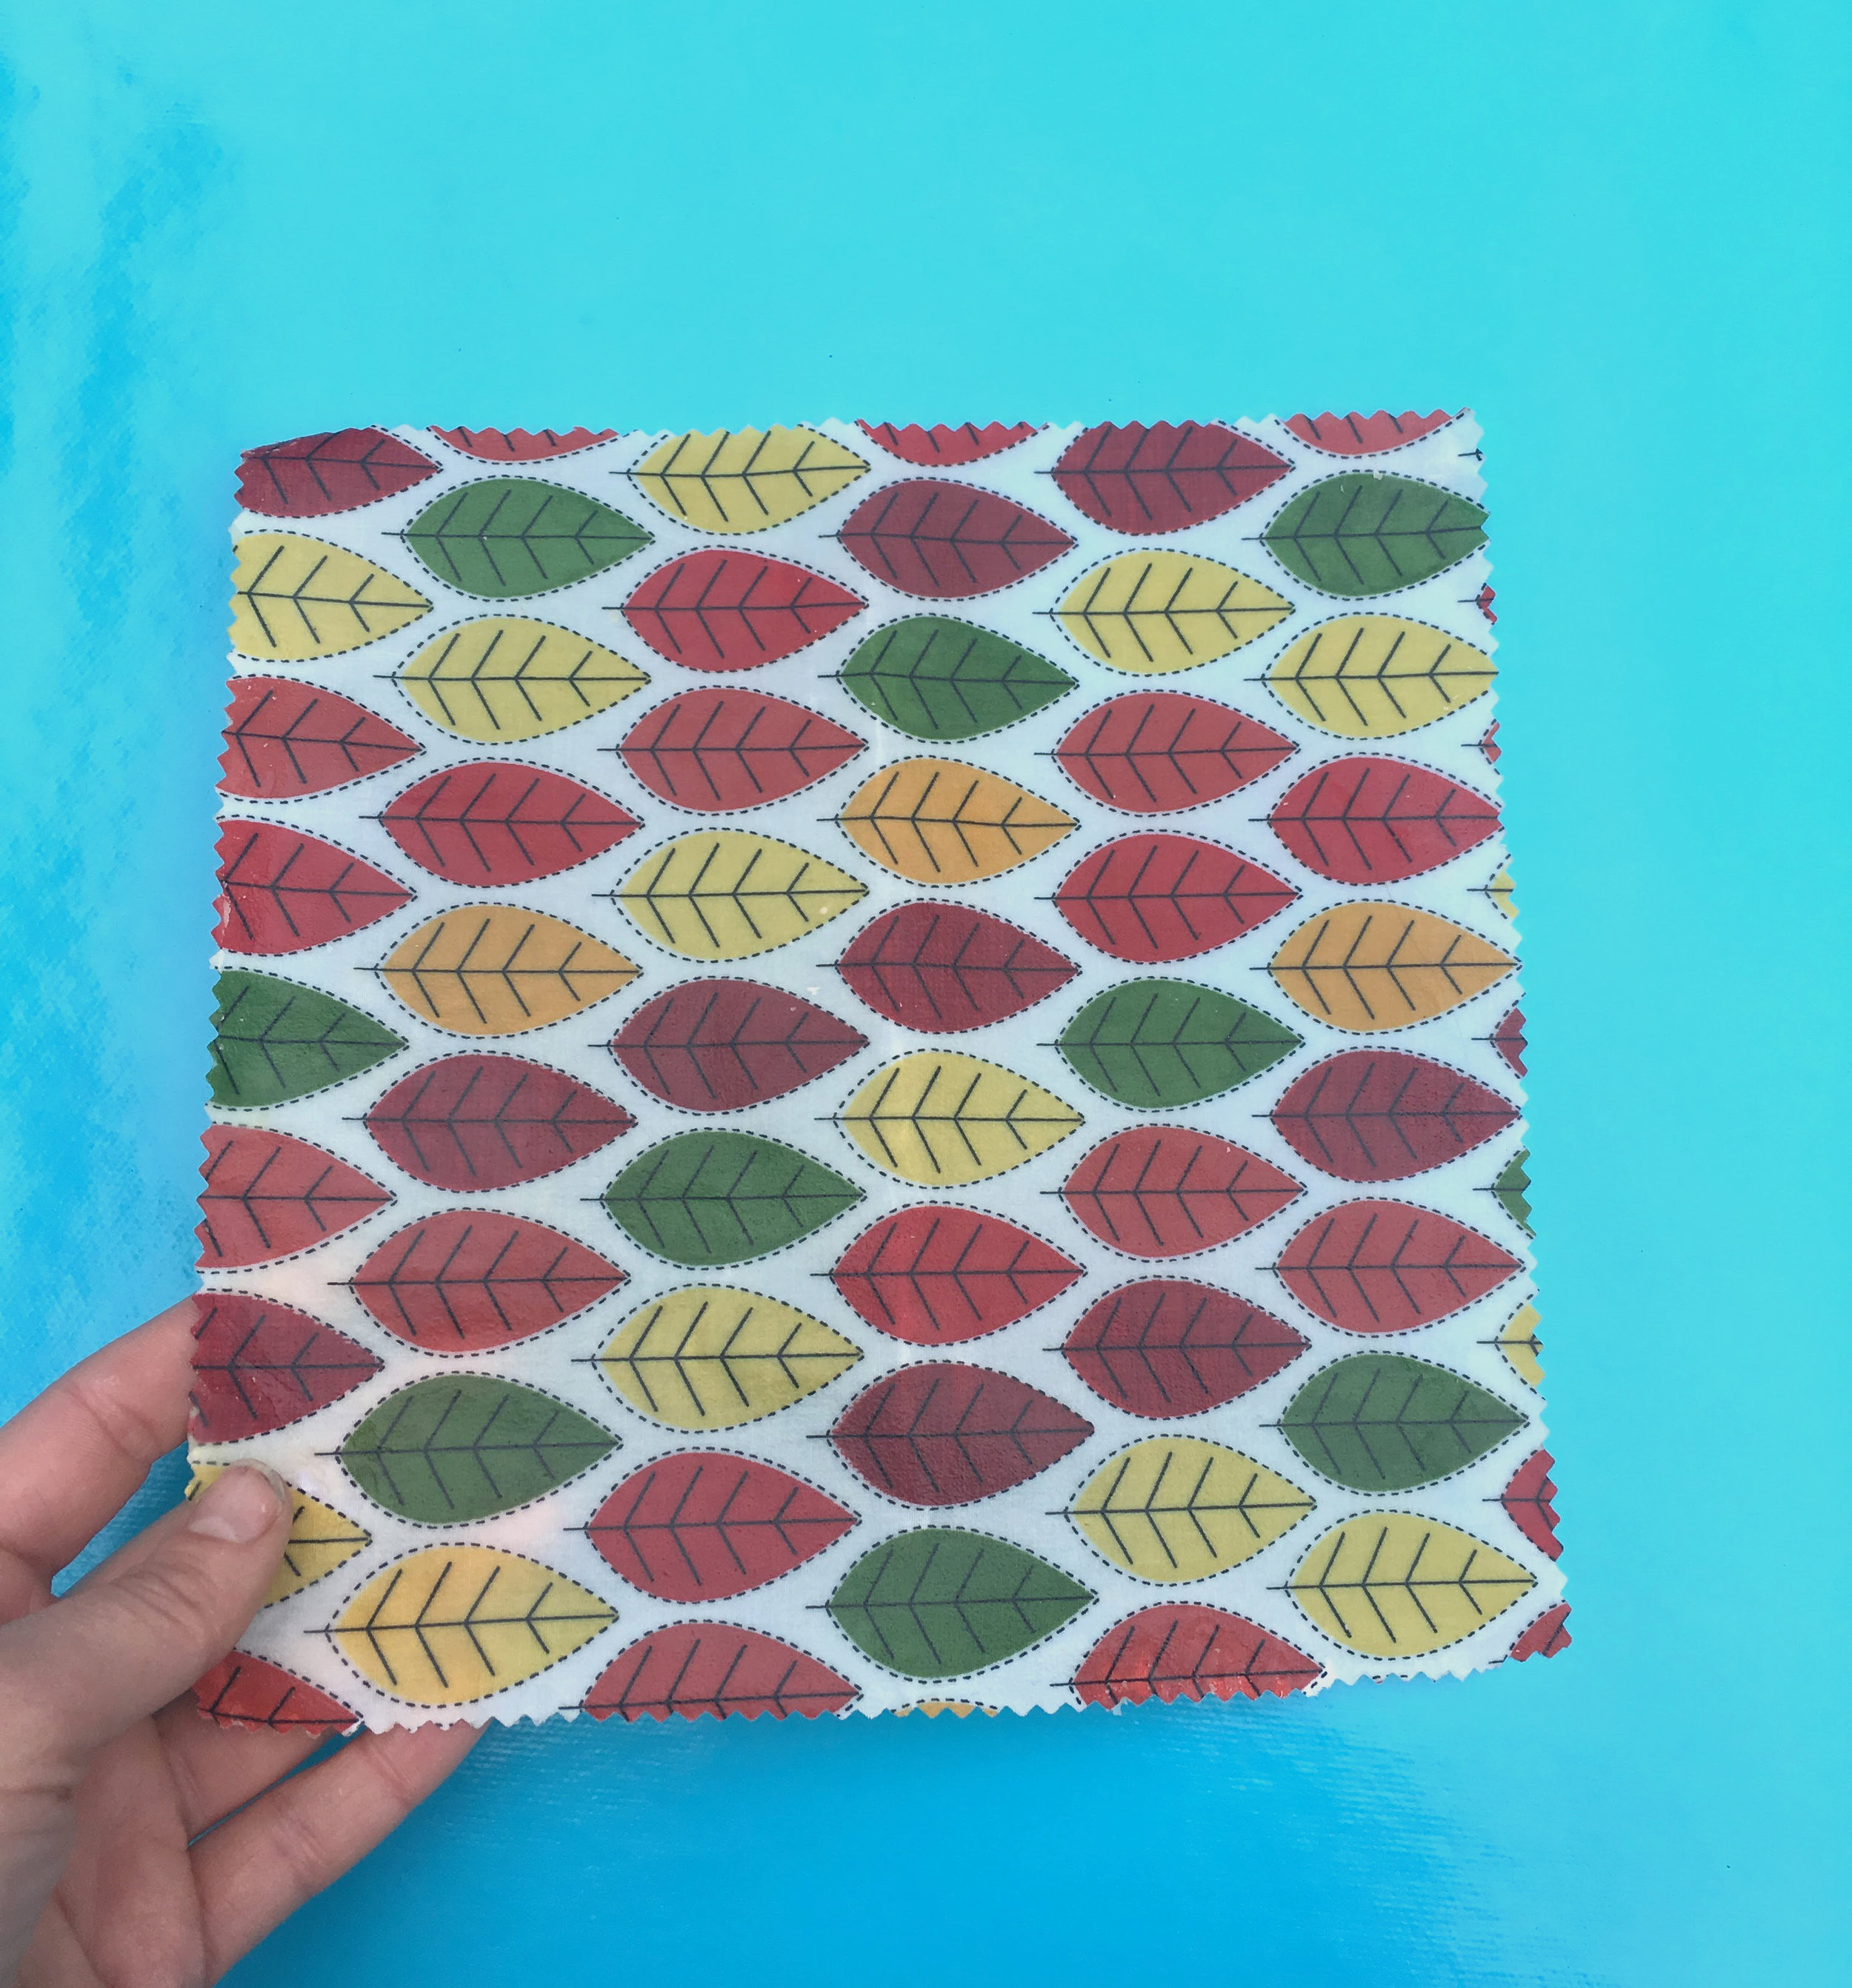 BEESWAX WRAP WORKSHOP - Wednesday 28th November @ Boom! Studios Bangor 6pm - 8pmBoom! Studios, 80 Main St, Bangor BT20 3AHDitch the plastic and learn how to make beautiful and environmentally friendly reusable bee wrap - made from 100% beeswax and 100% cotton the wrap can be used to keep food fresh as an alternative to plastic wrap or aluminium foil. Make a set of four colourful wraps to use at home and leave with the skills to make more.http://www.boomstudios.org.uk/